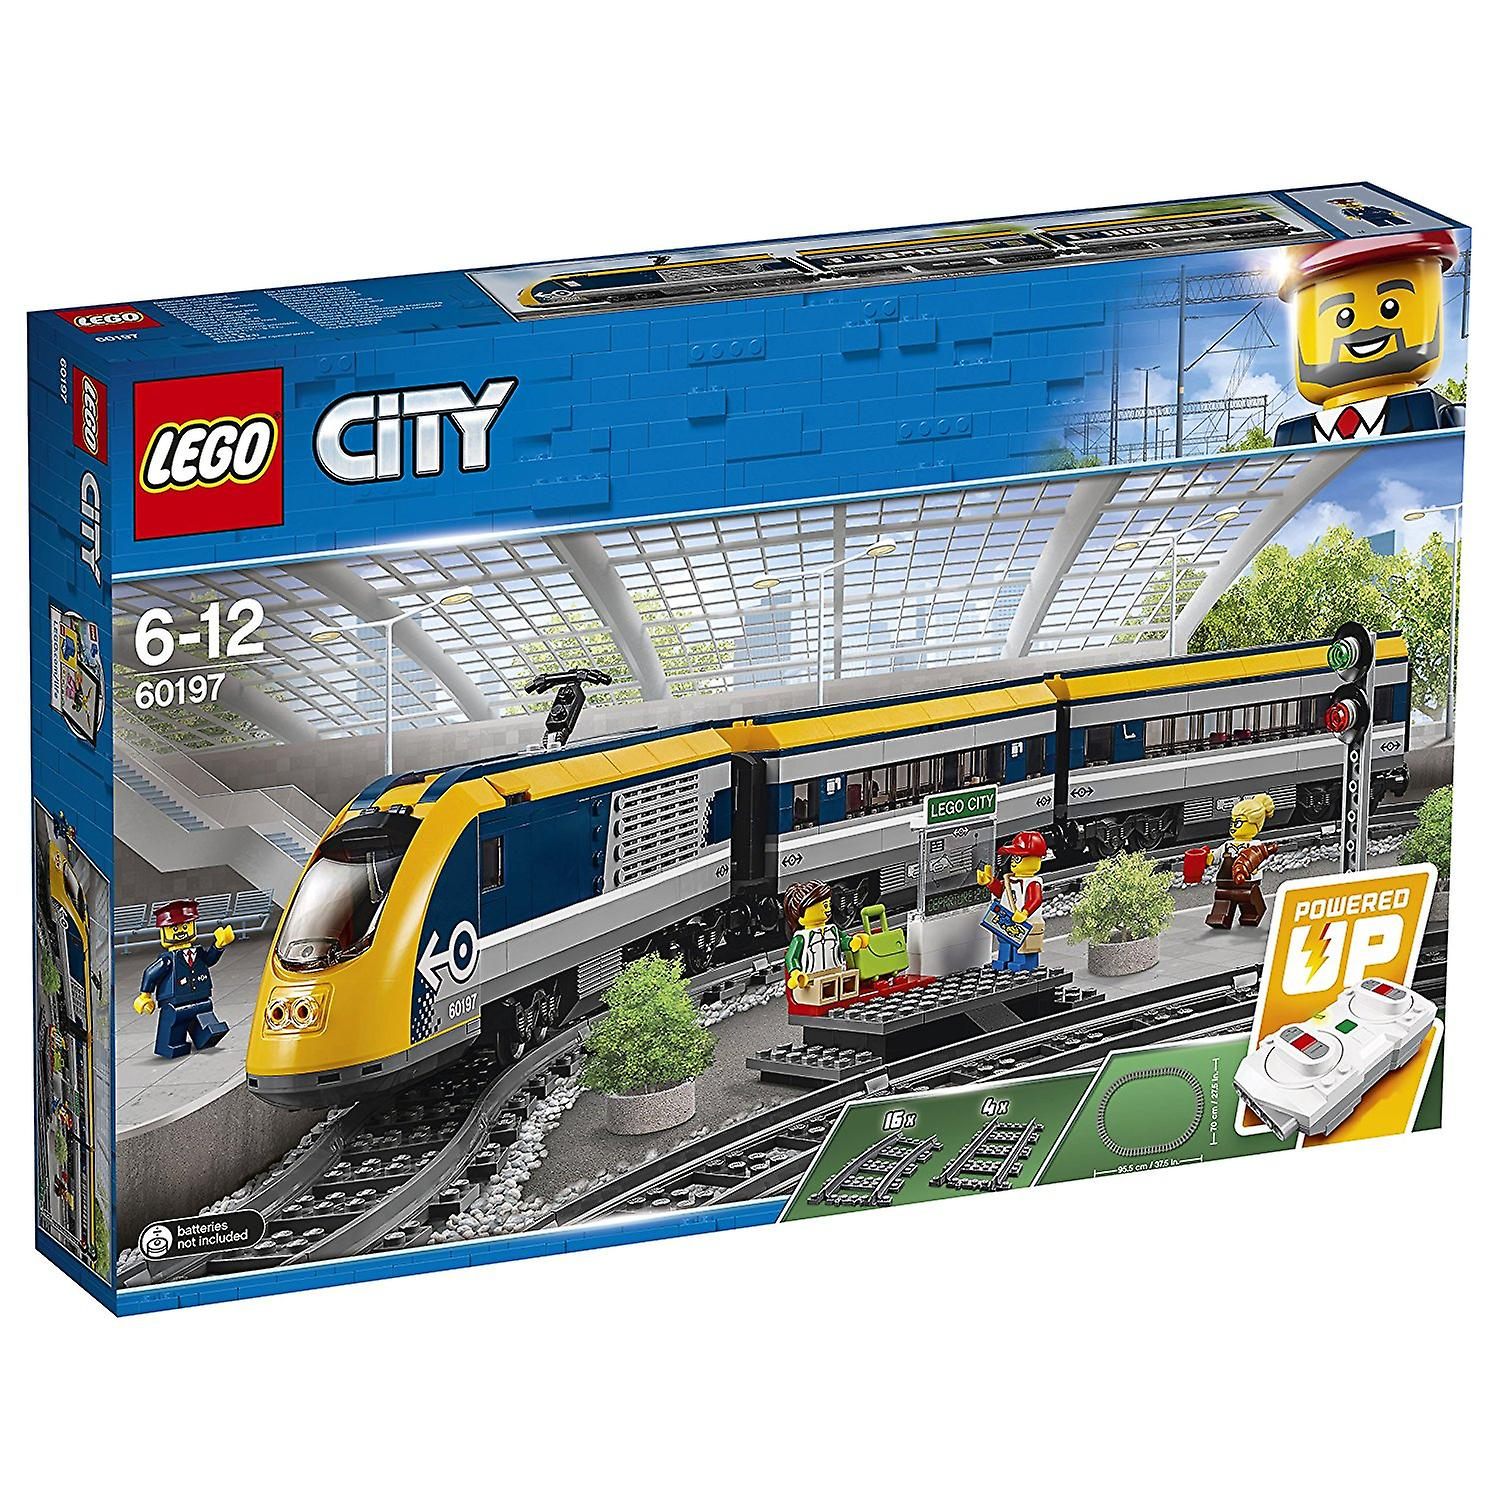 LEGO City 60197 passager Train Construction Playset